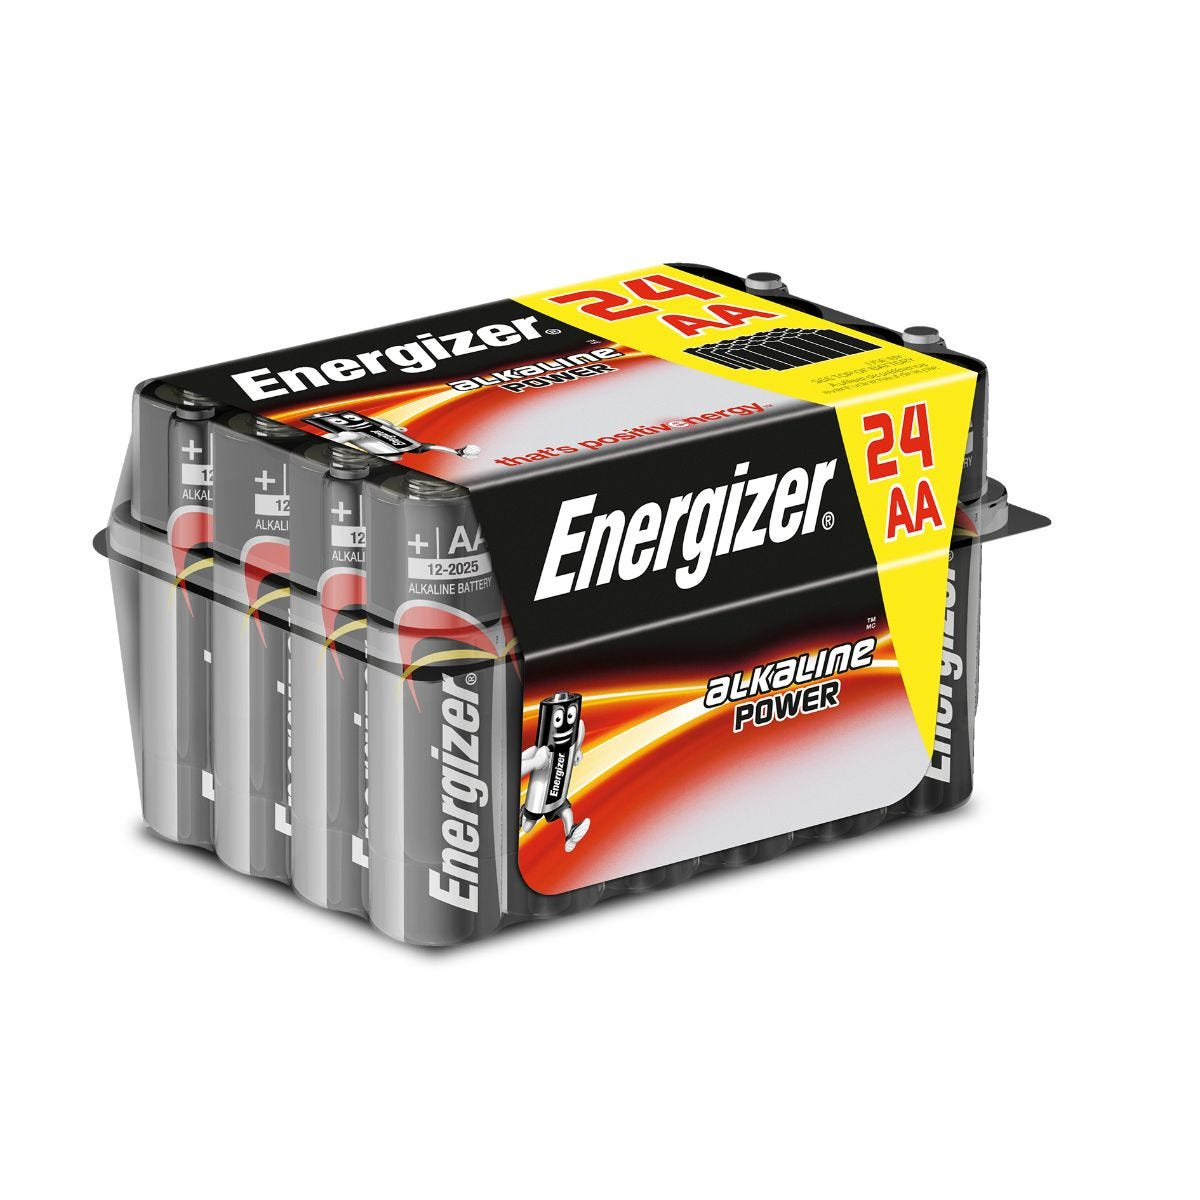 Image of Energizer AA 24 Value Pack